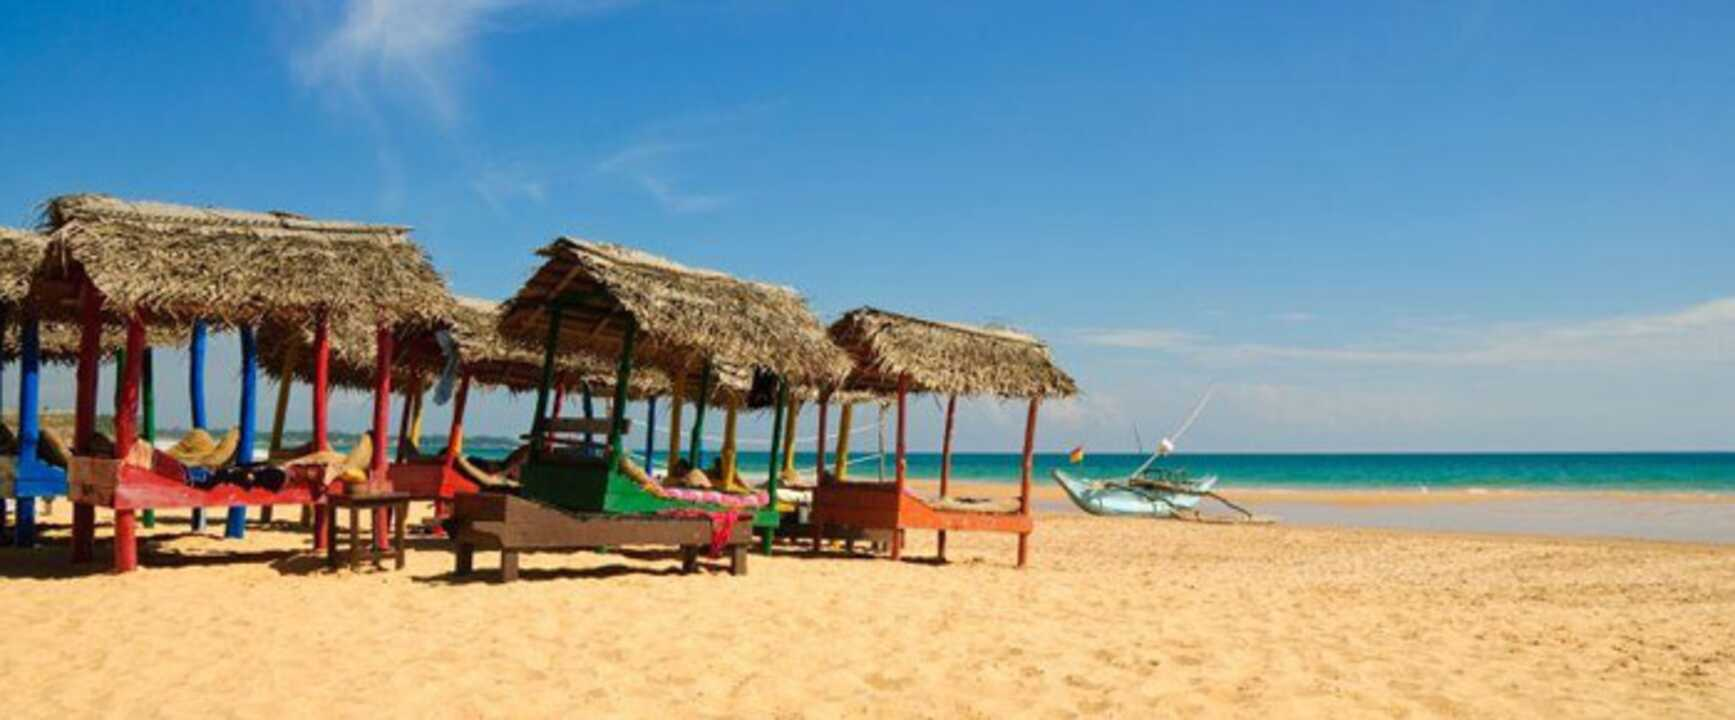 sri lanka holidays find a cheap holiday in sri lanka